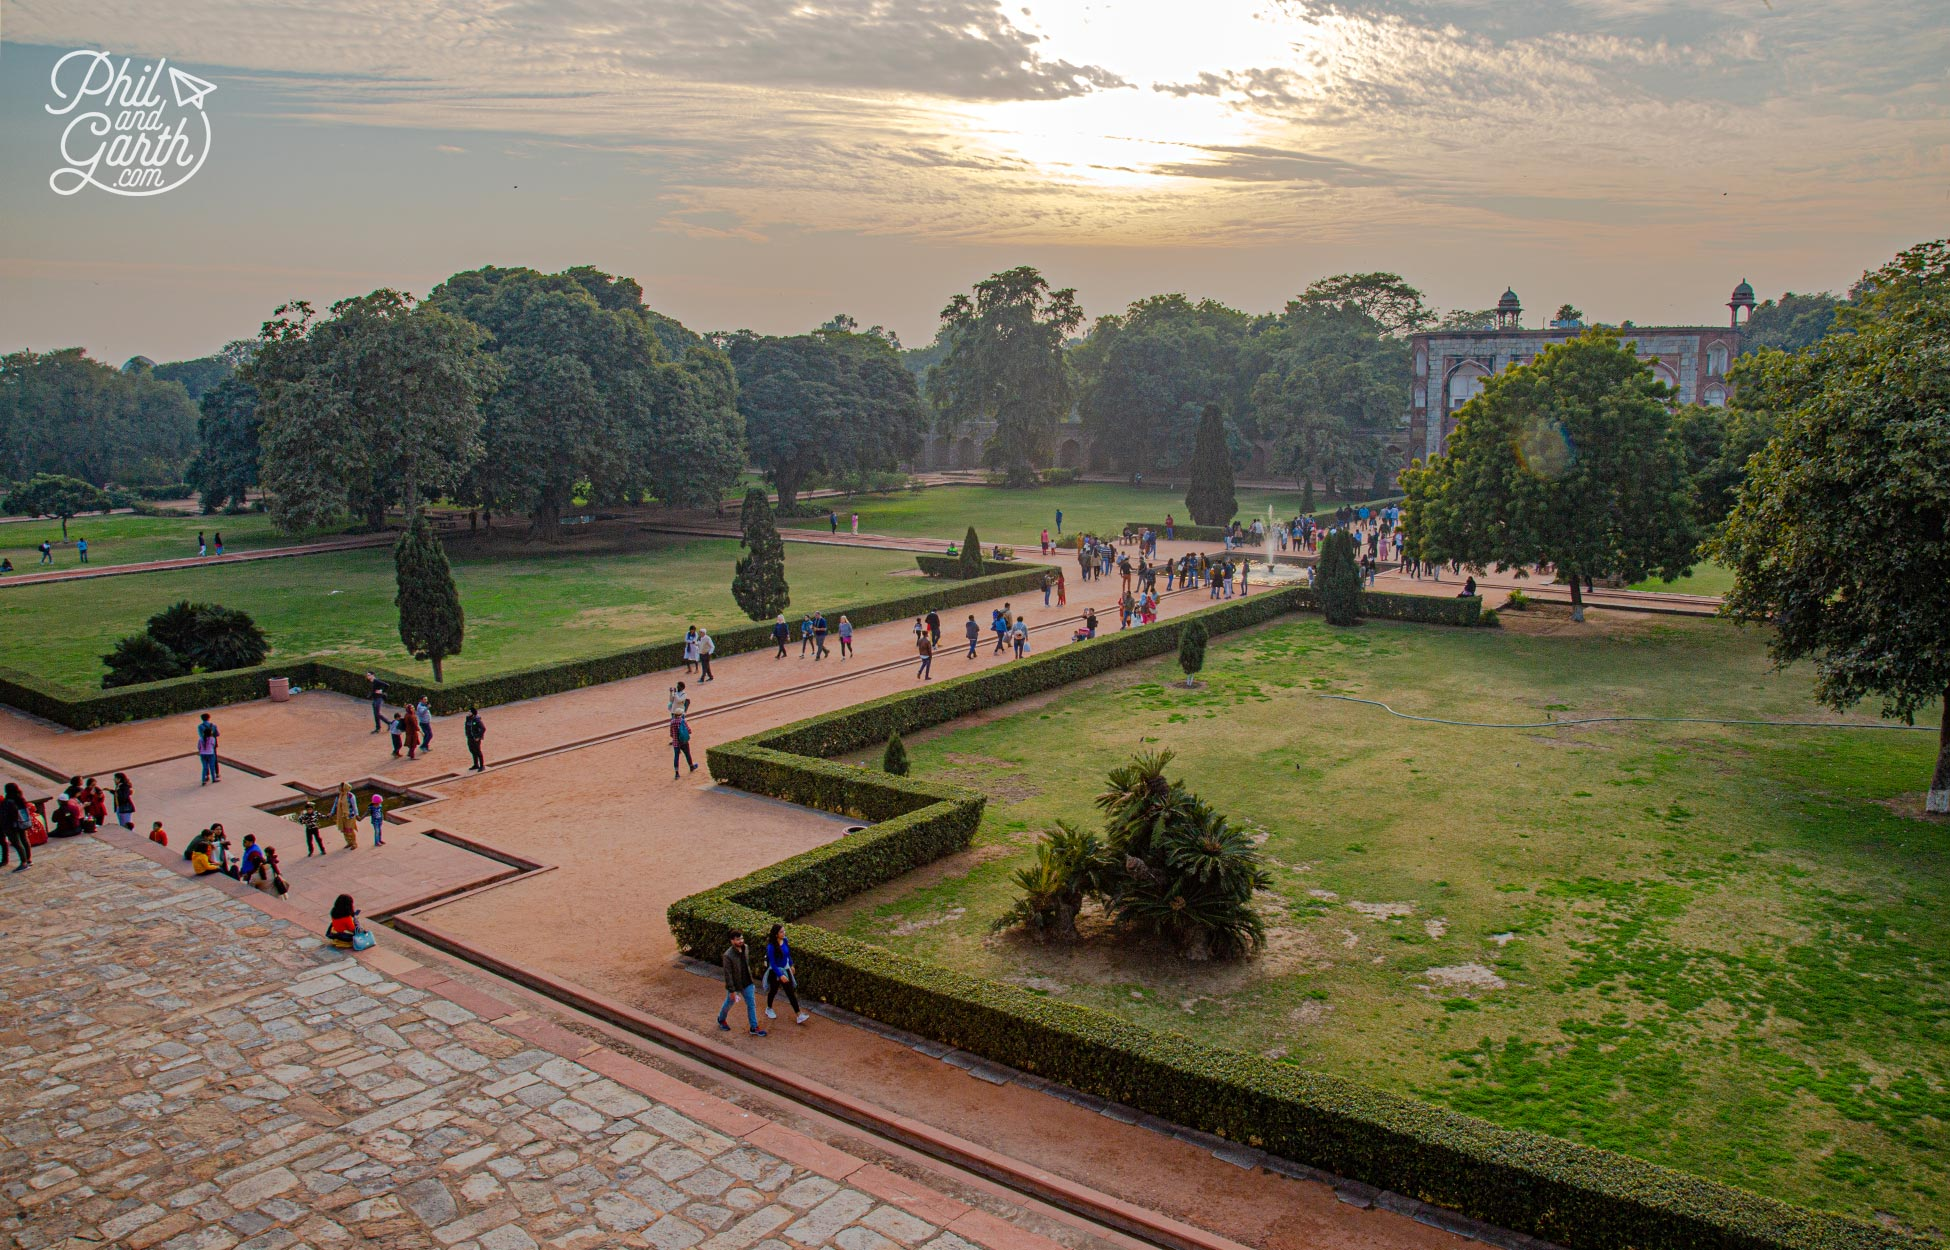 Humayun's Tomb paradise garden - typically divided into 4 squares with central water channels